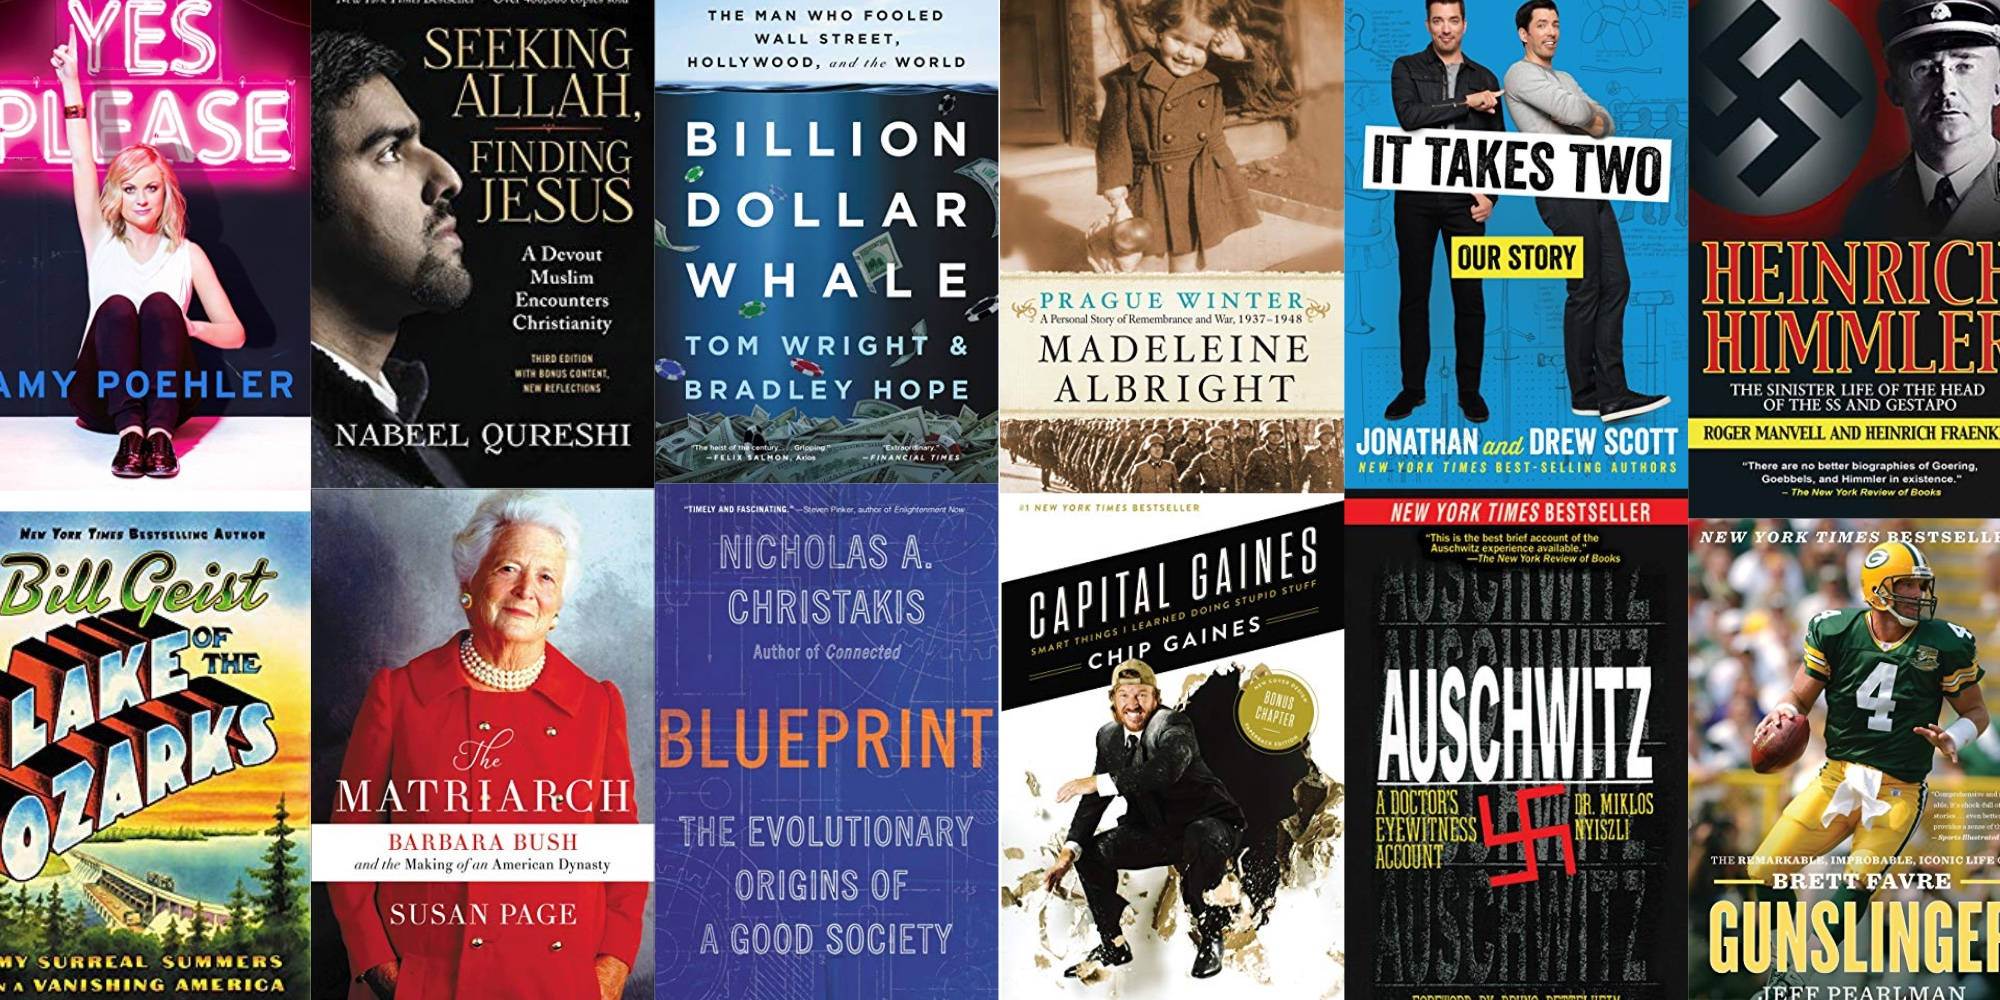 Expand your Kindle library w/ New York Times best-selling